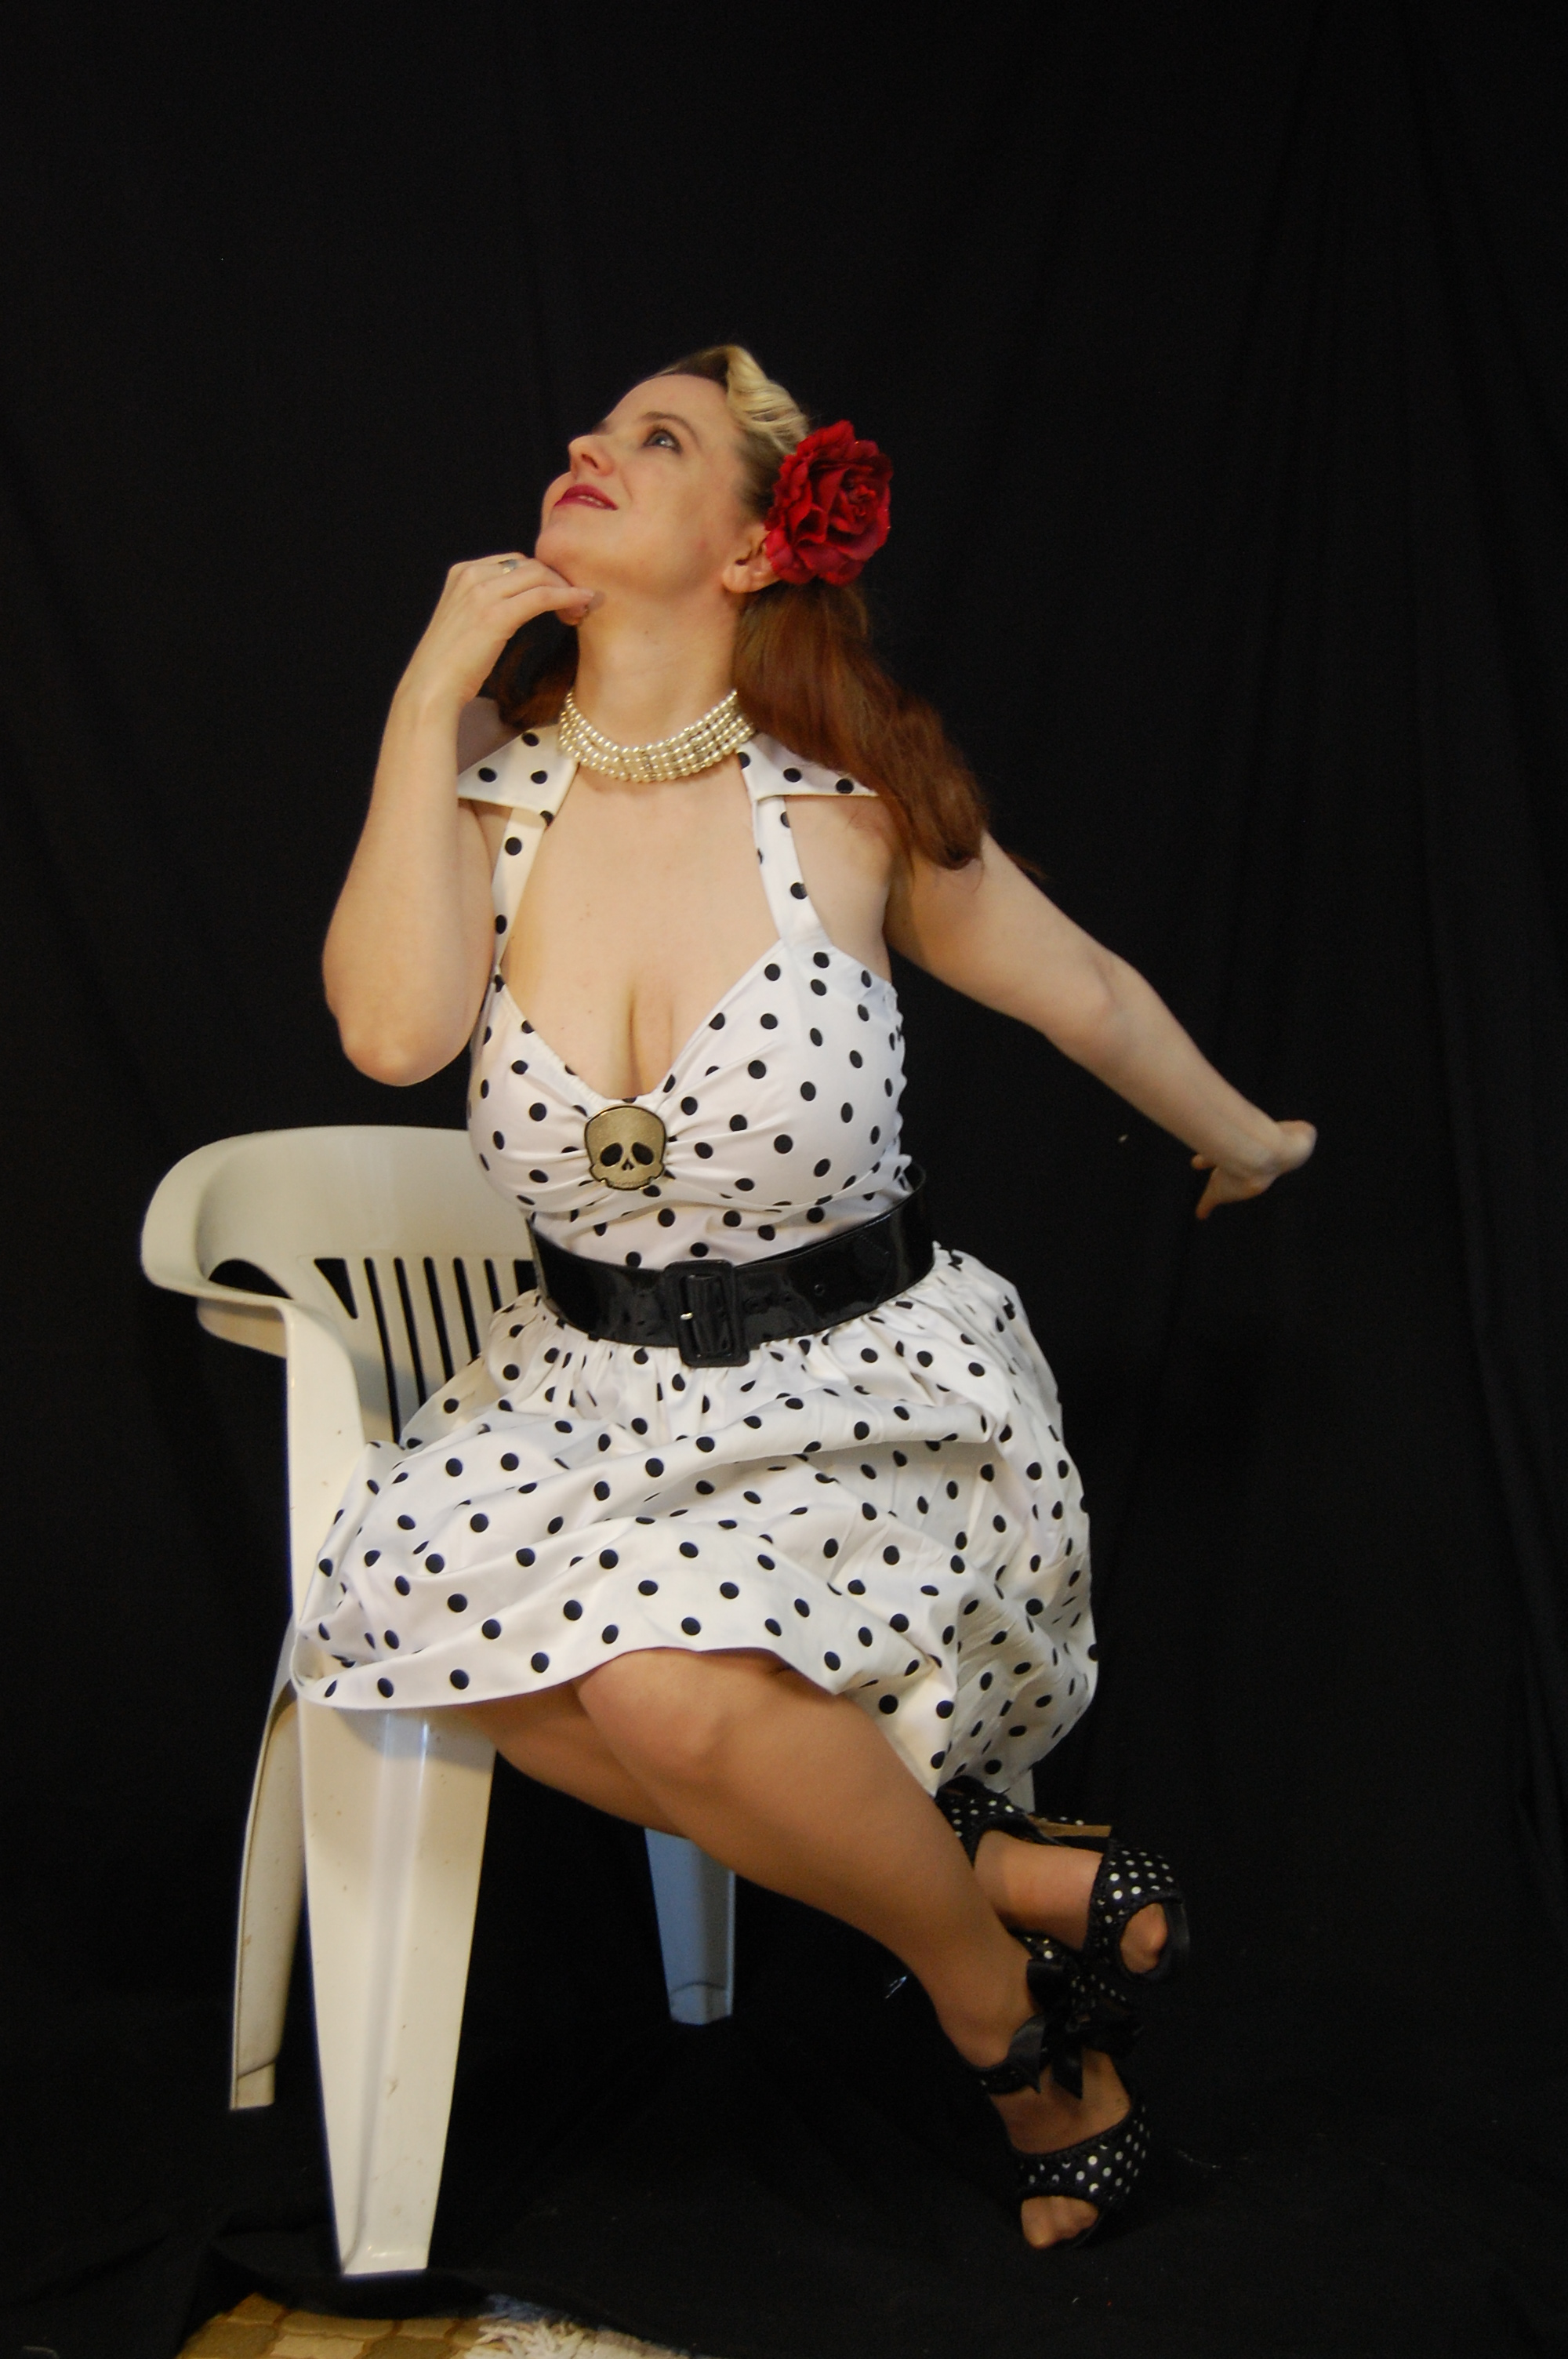 2010 Fife pinup white dress 0401